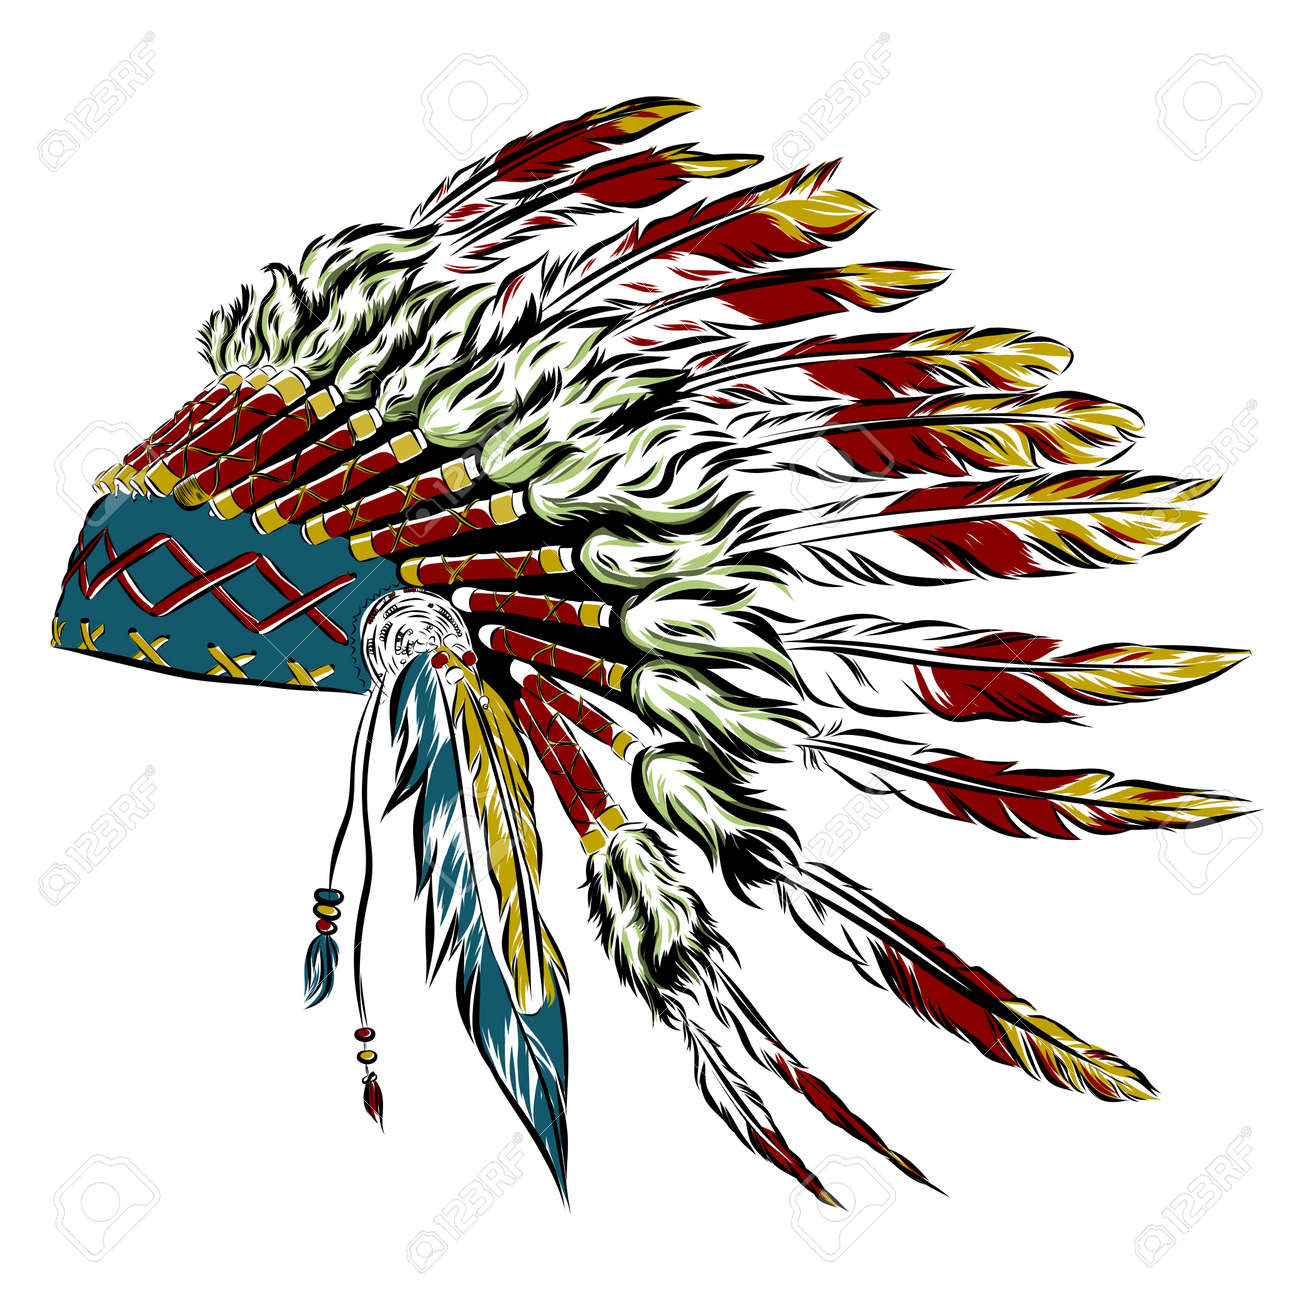 hight resolution of native american indian headdress with feathers in a sketch style multicolored card for thanksgiving day